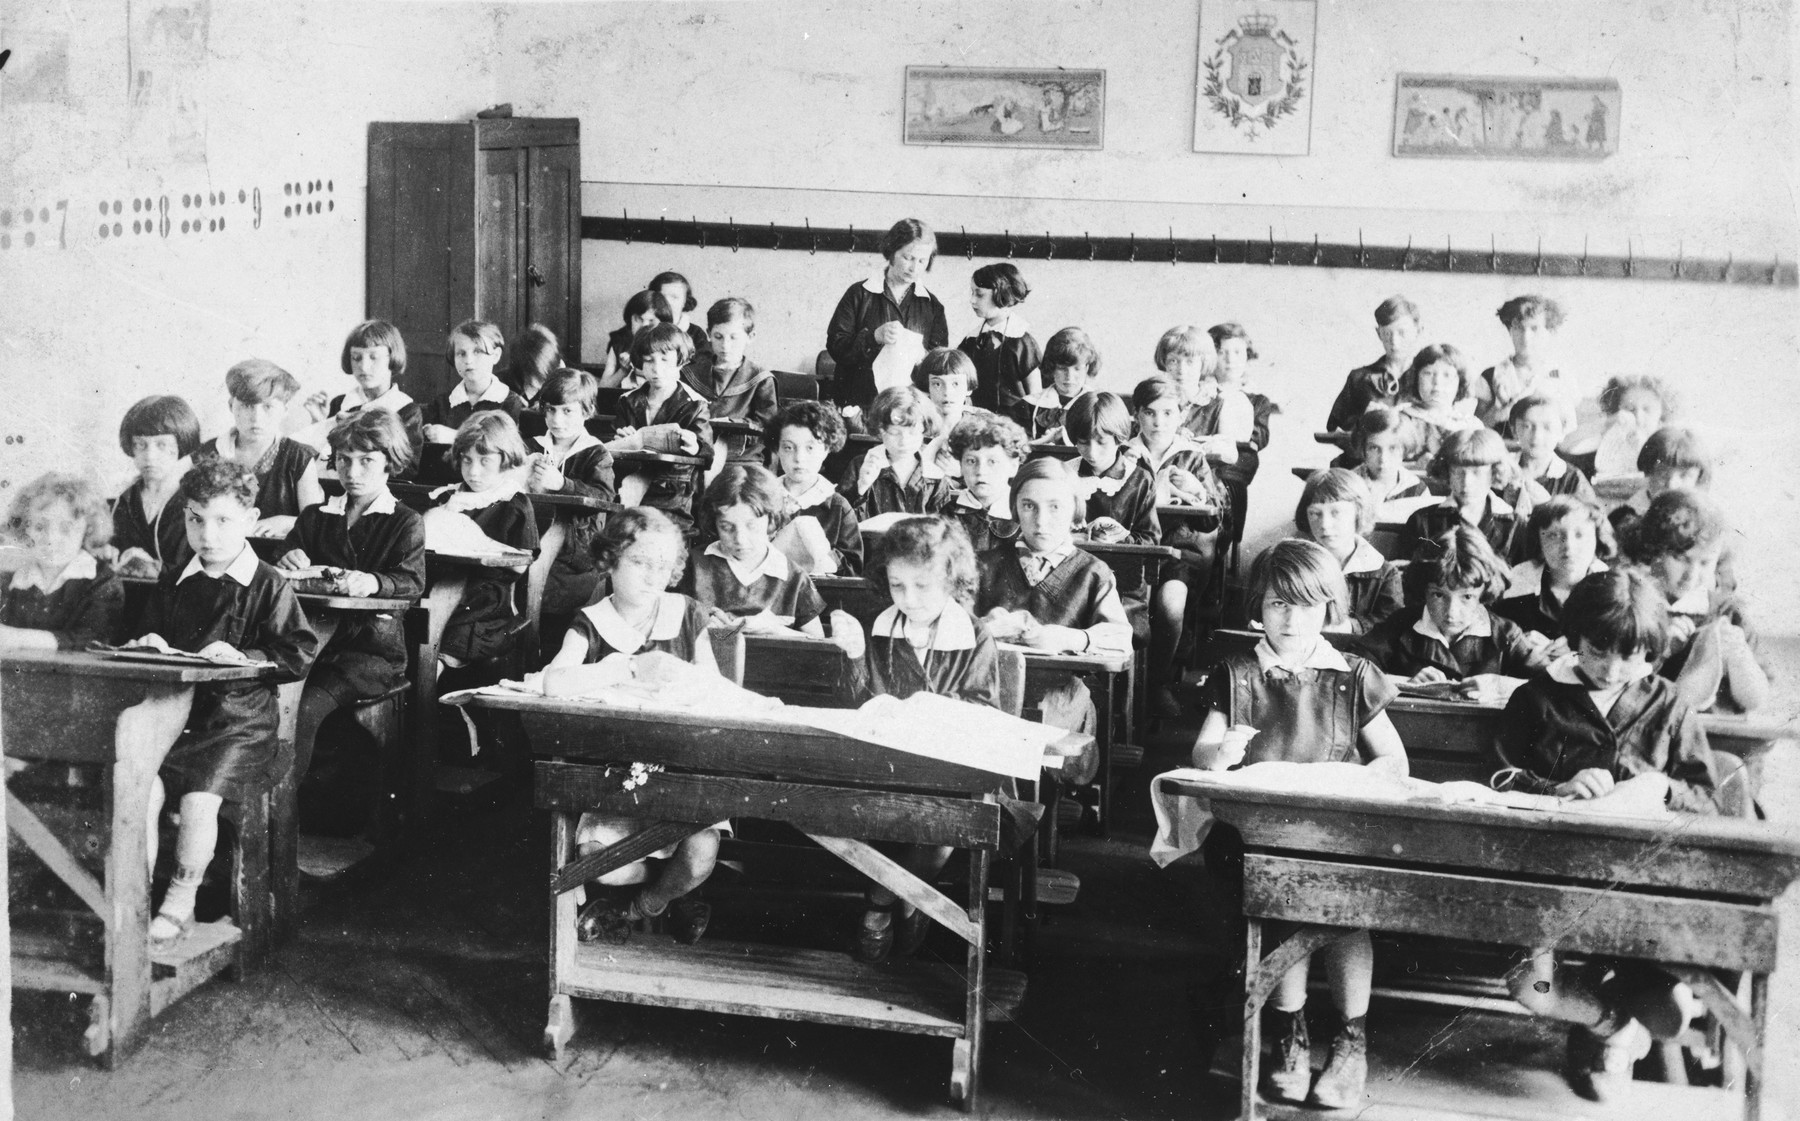 Pupils sit at their desks in a classroom at a public school on Zamarstynowska Street in Lvov.  The school, which was located in a Jewish neighborhood, was populated almost entirely by Jews.  Among those pictured is Tamara Abramowicz (lower left).